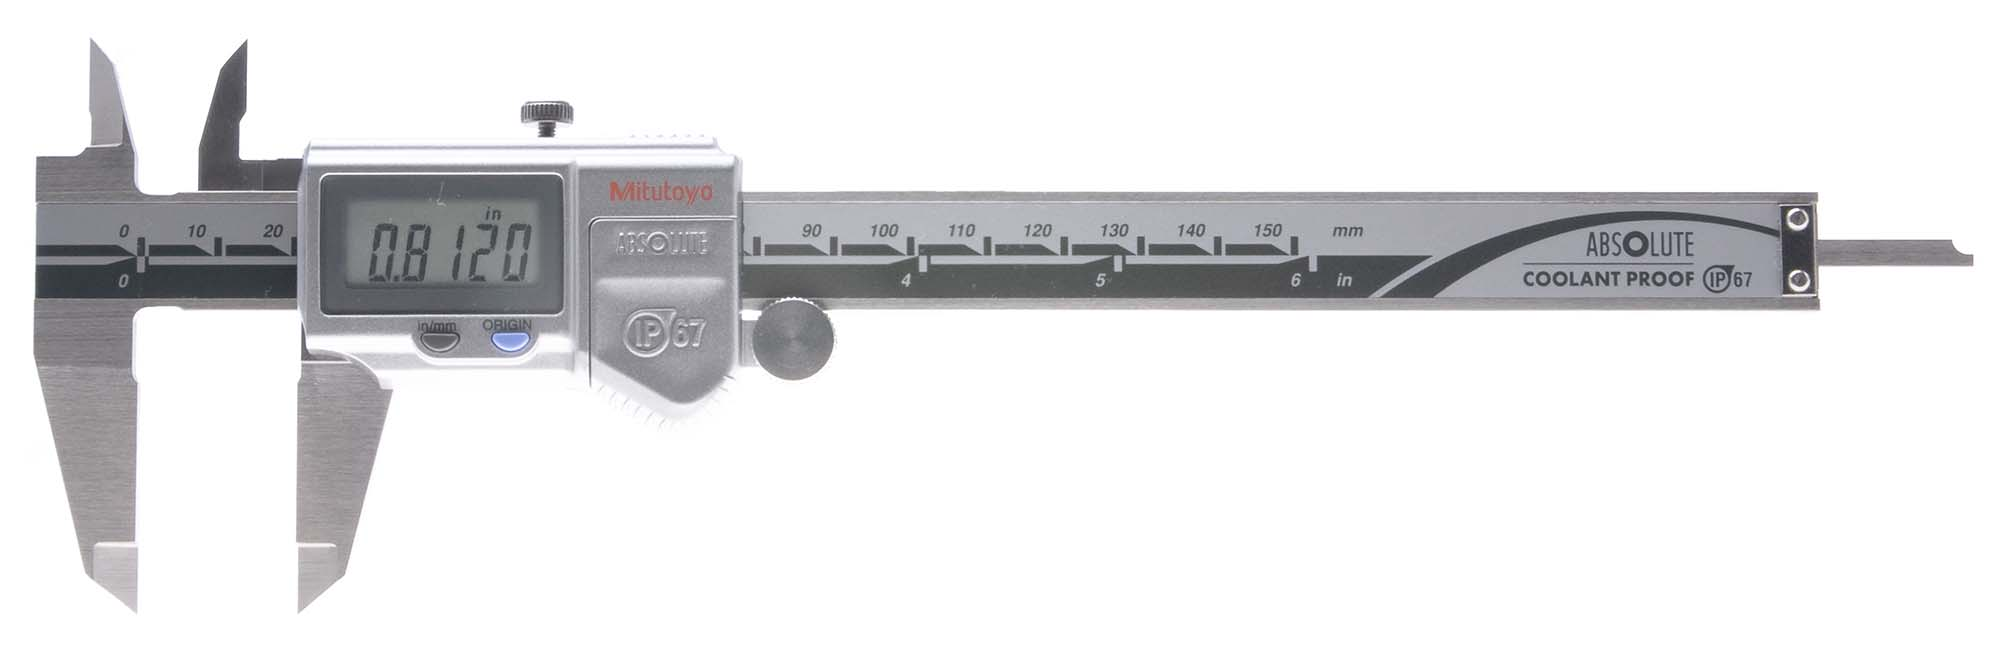 "Mitutoyo 12"" Coolant-Proof Electronic Caliper"